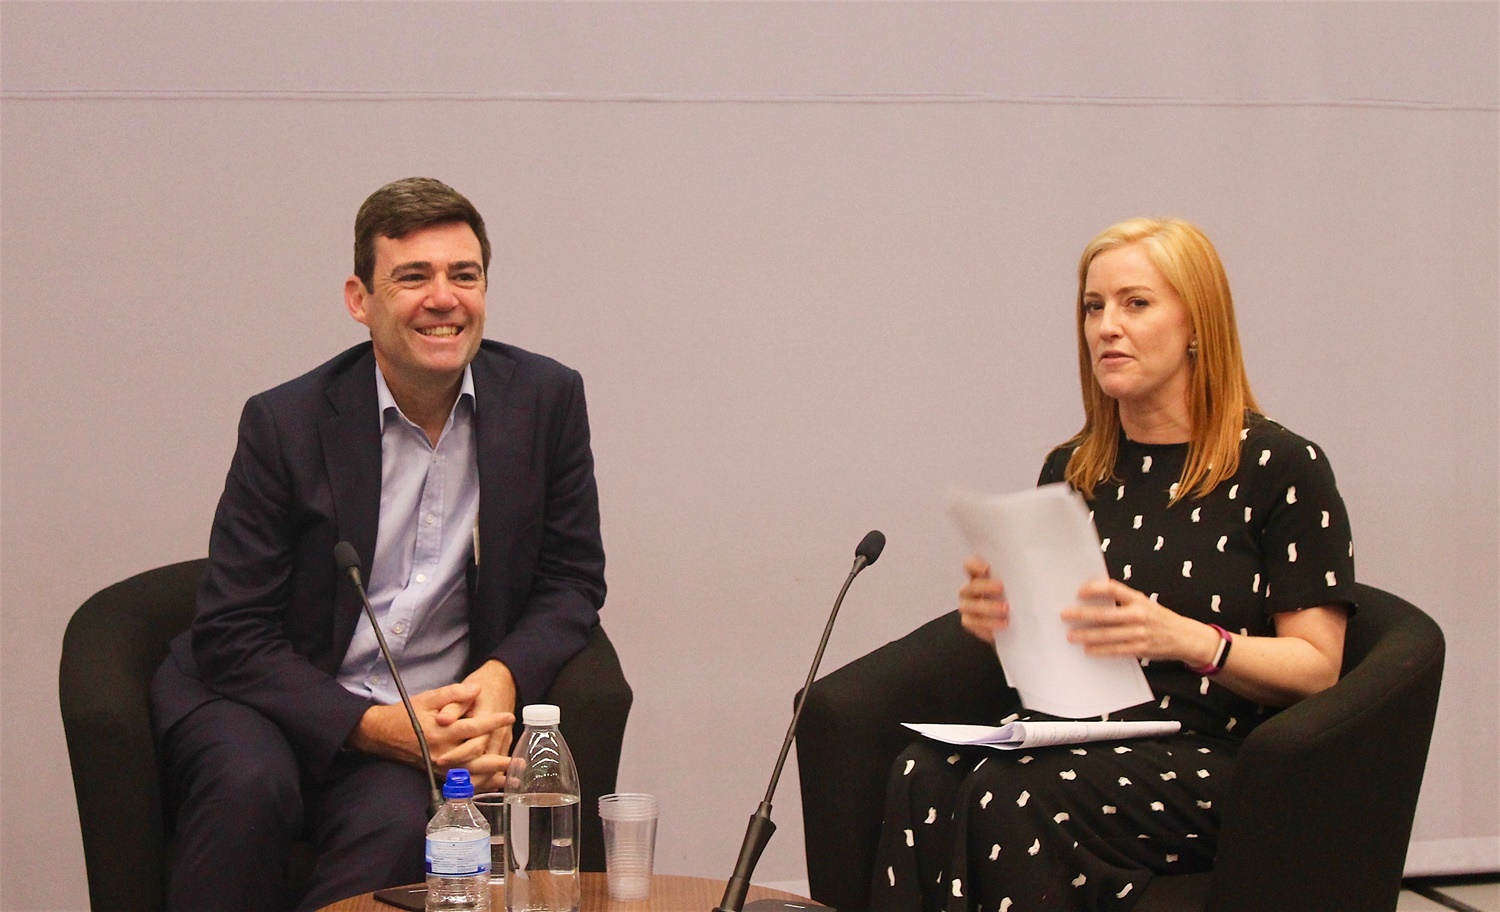 Andy Burnham and Sarah Jane Mee